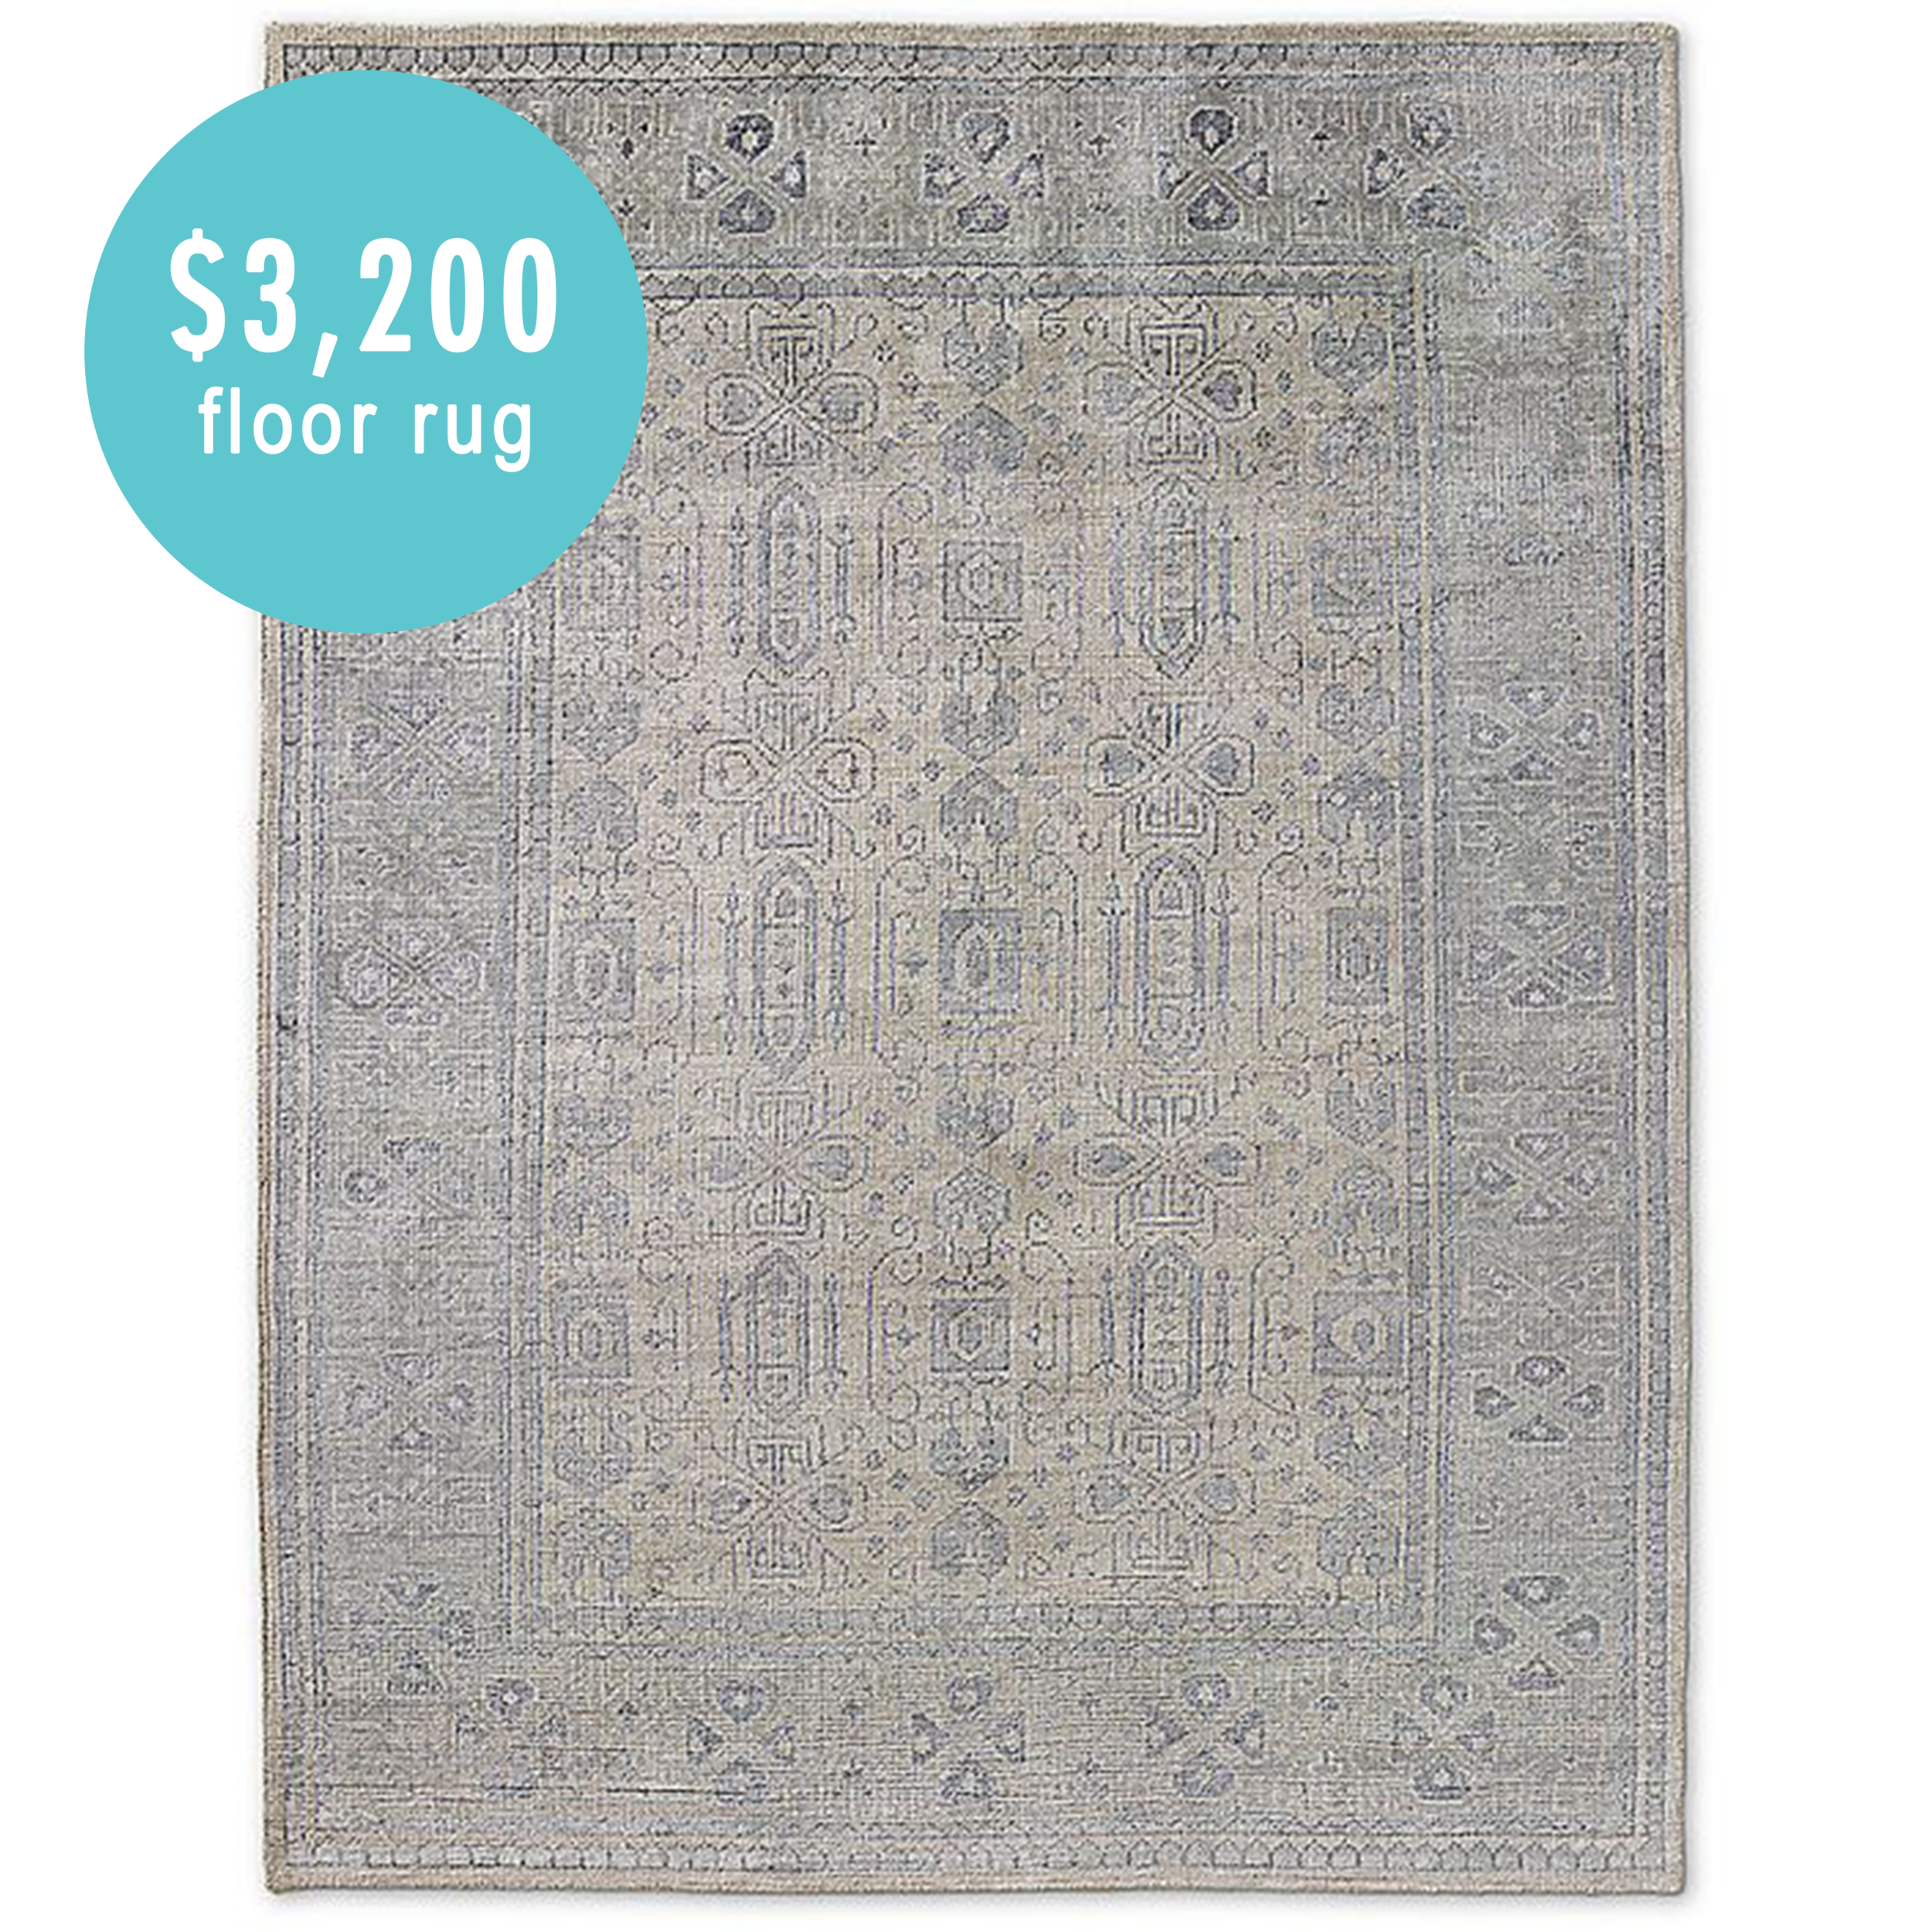 rug_21.png